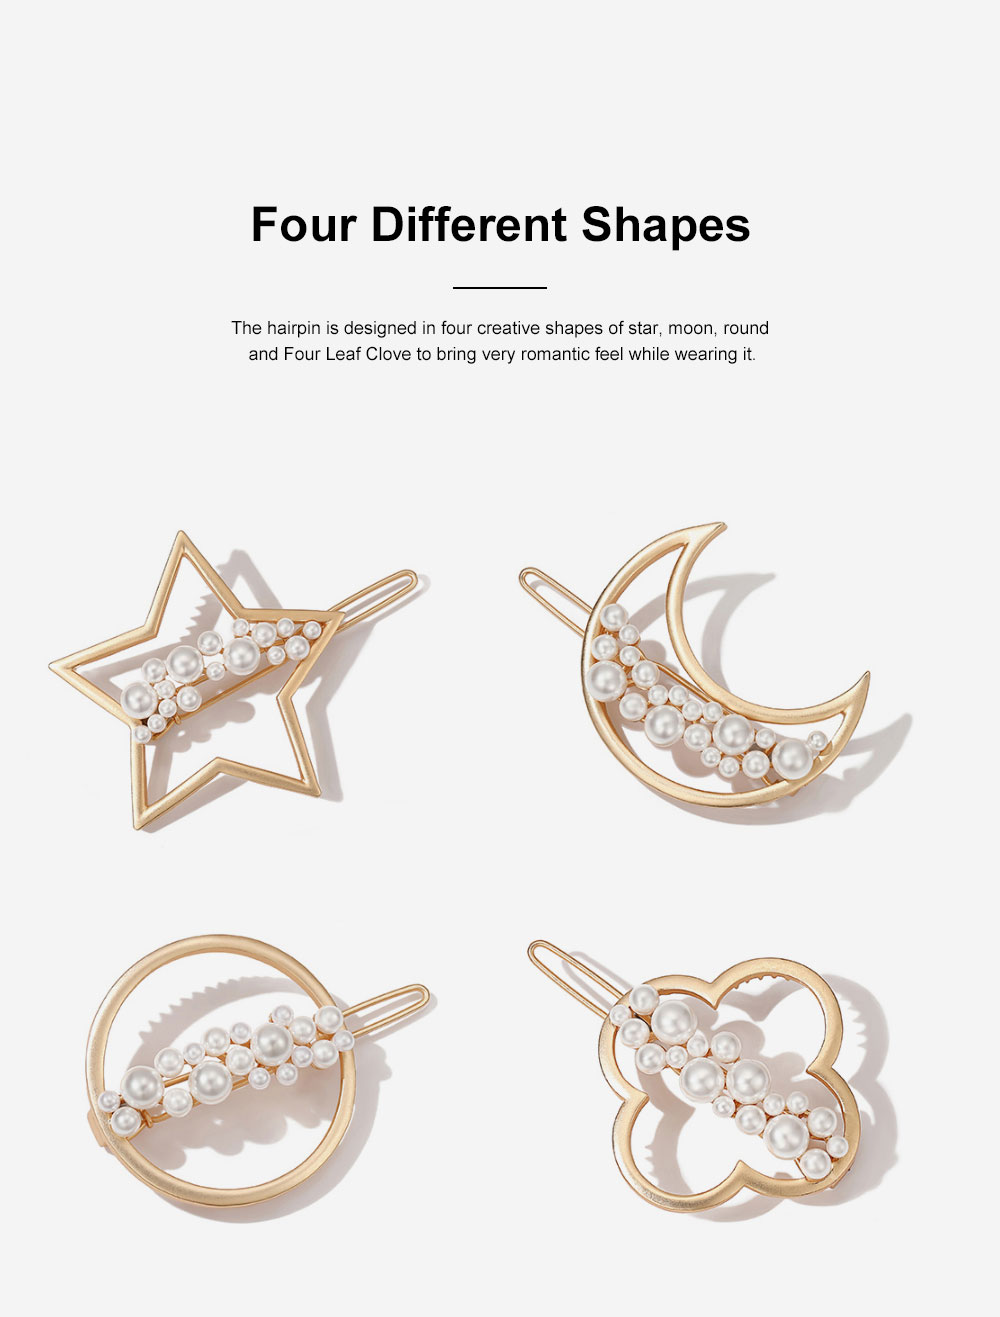 Creative Shape Hairpin Imitated Pearl Alloy Glossy Hair Grip for Girls Gold-plated Hair Accessories Starry Tuck Comb Side Hair Clip 2020 5